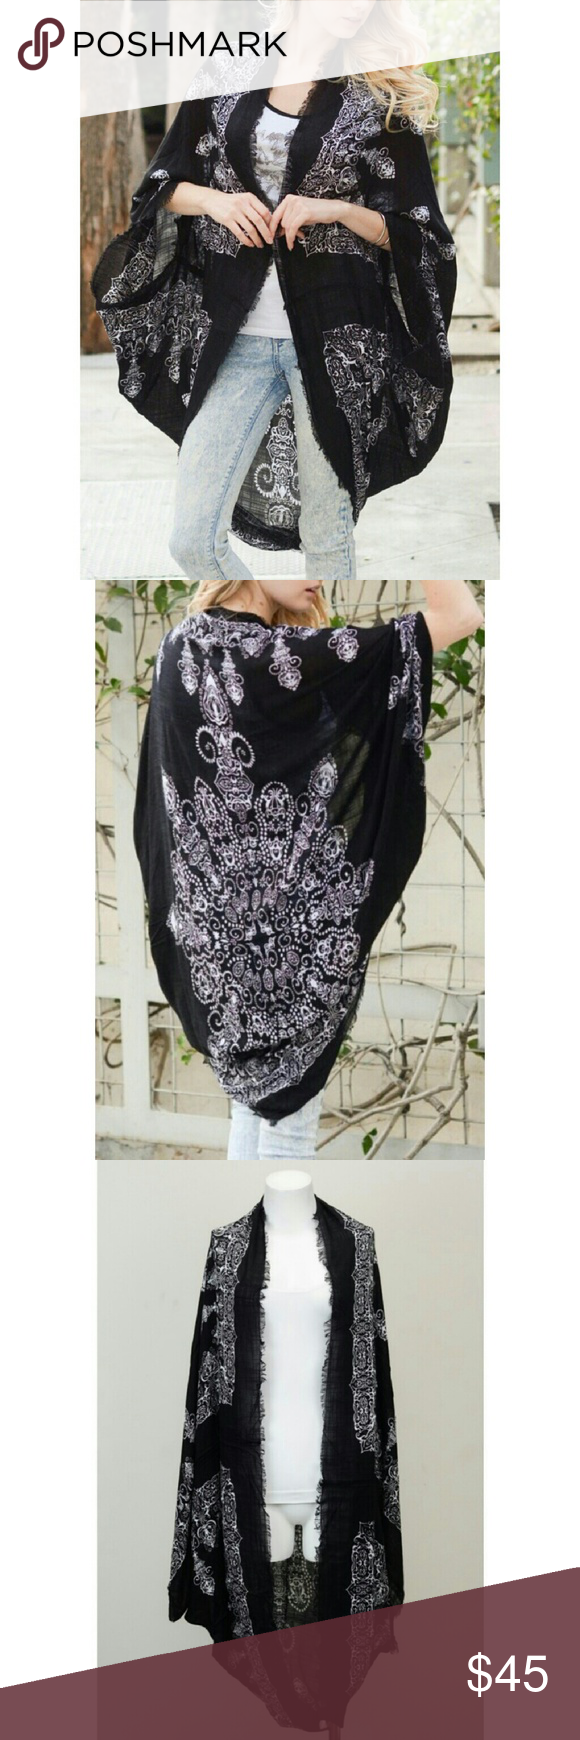 """Coming Soon Mandala Kimono 100% Polyester Approximately 45"""" Long Lightweight  Price will be $25 Jackets & Coats"""